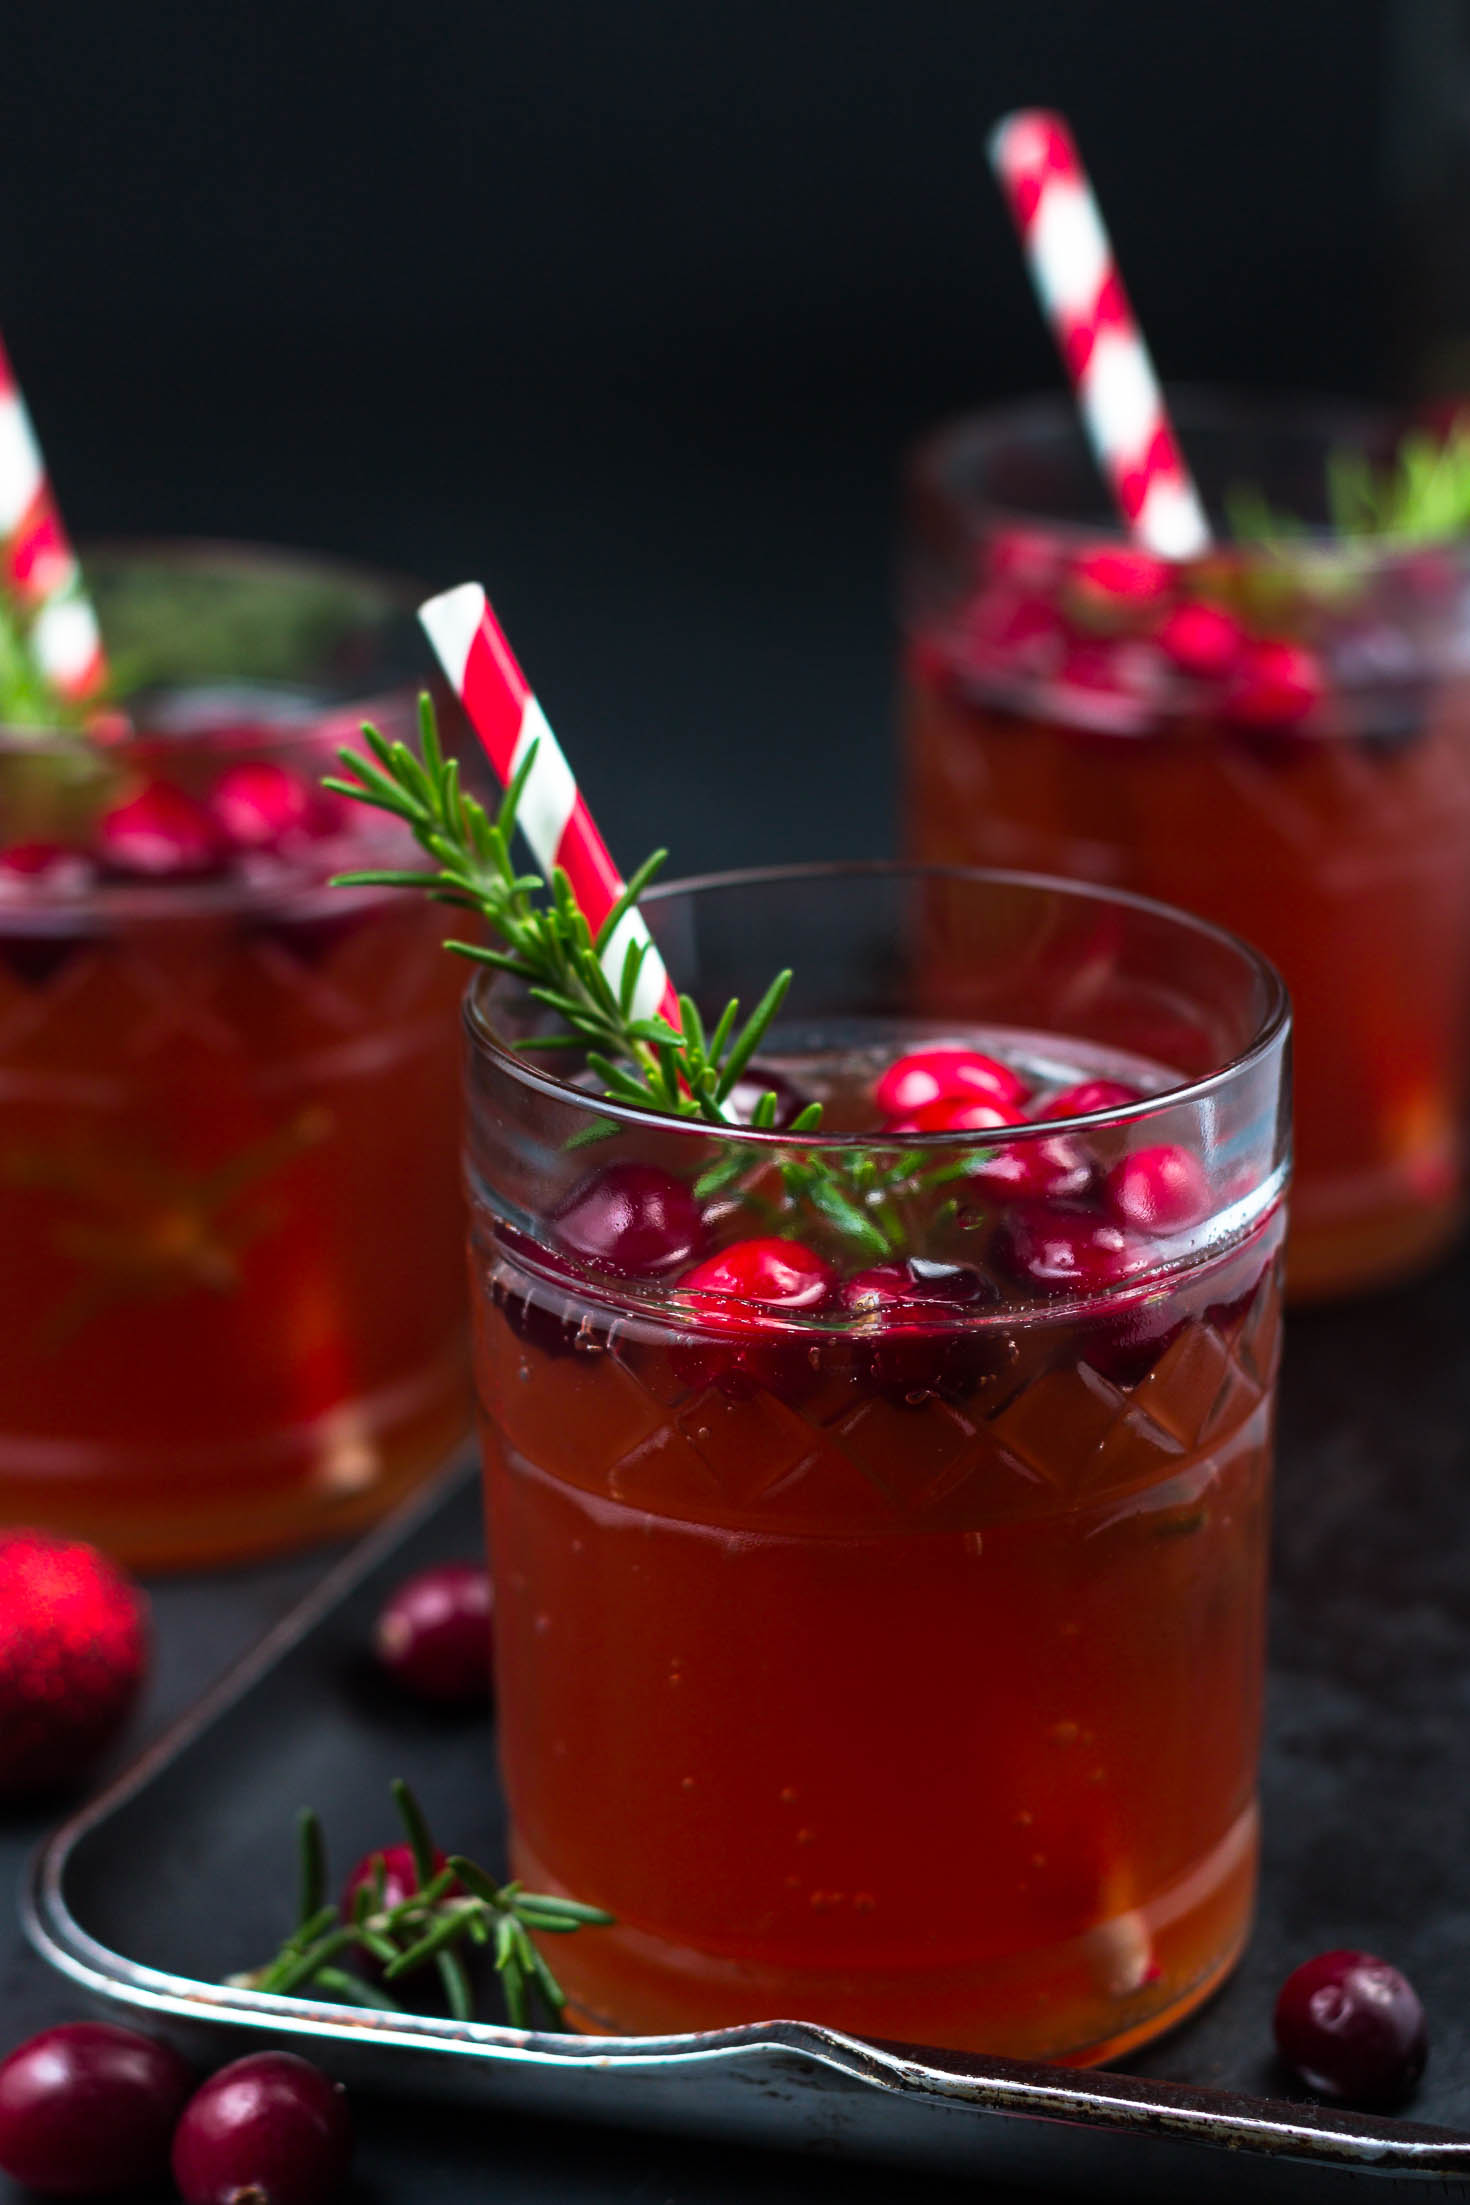 Sparkling Cranberry Rosemary Kefir Punch-closeup view with 3 glasses of kefir punch garnished with fresh rosemaries and cranberries.